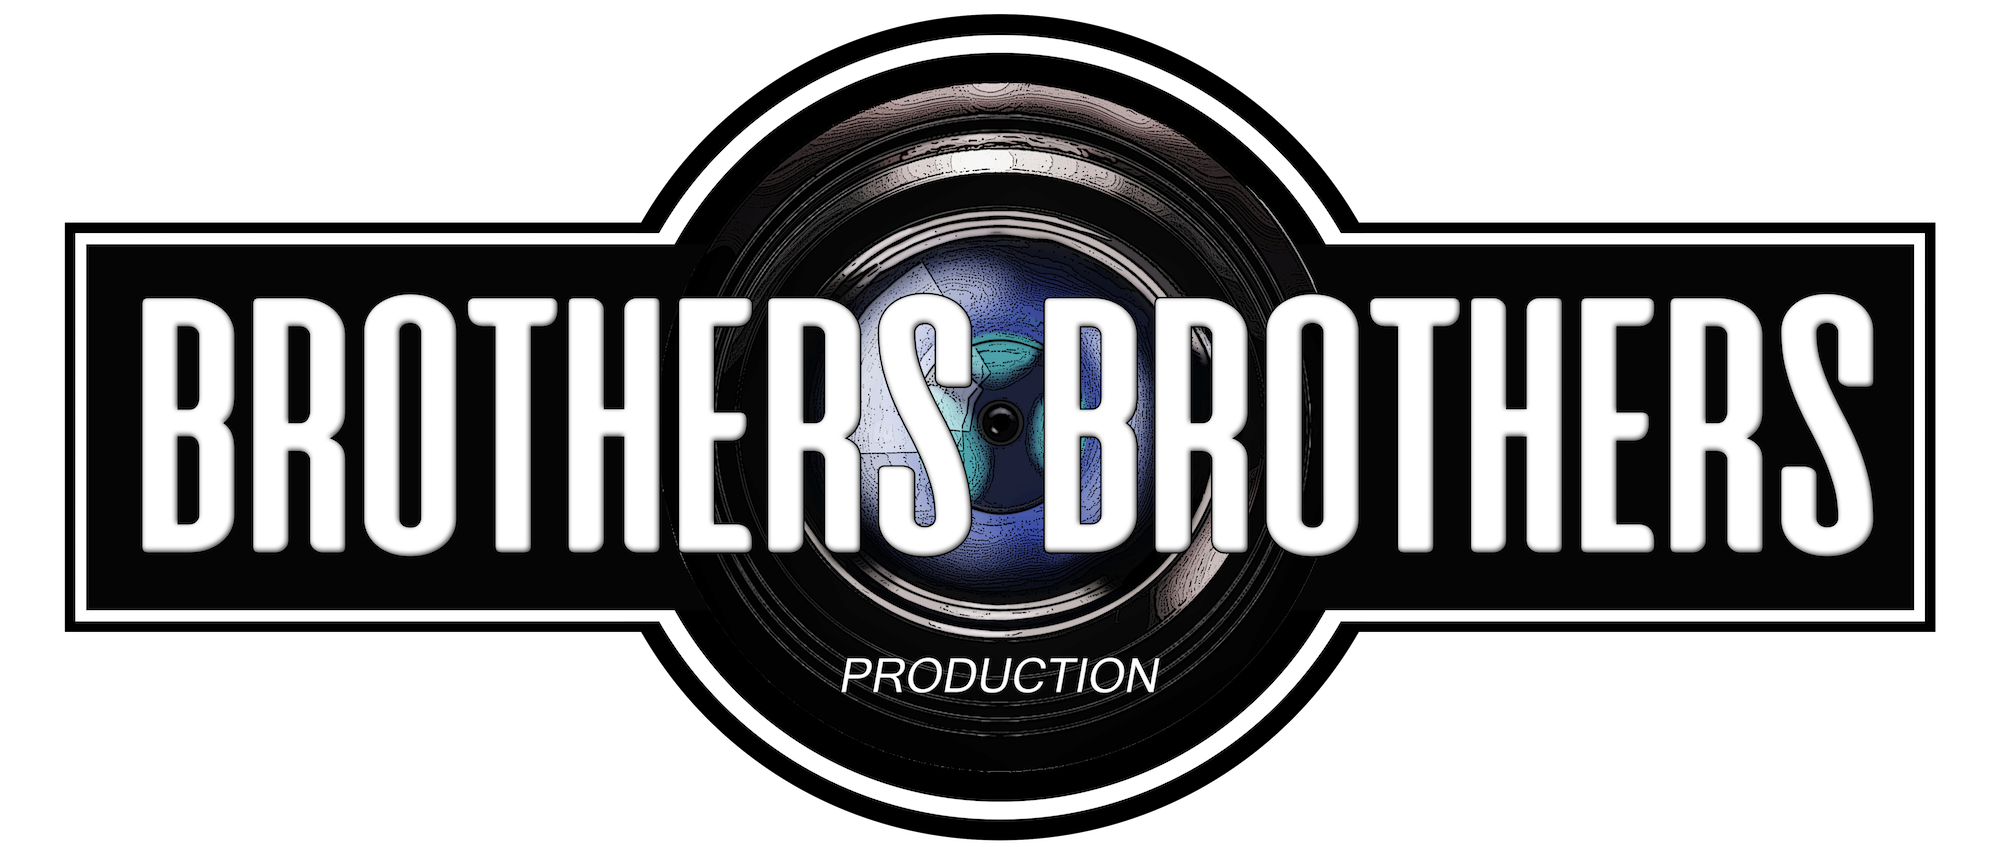 BrothersBrothers Production